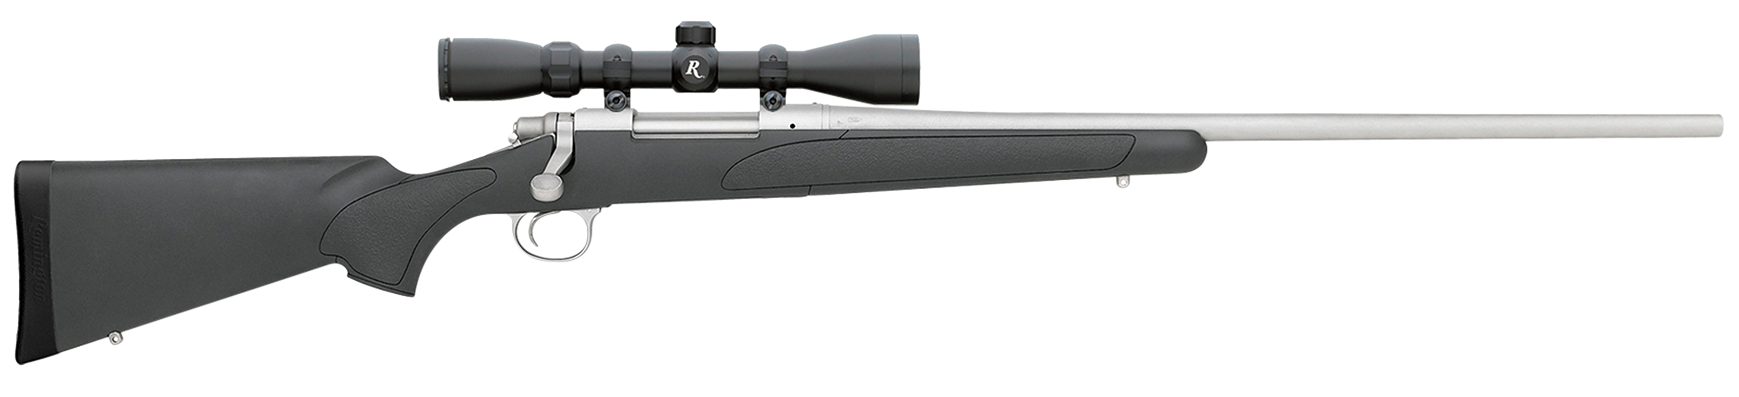 Remington 700 ADL Combo 243 Win 24